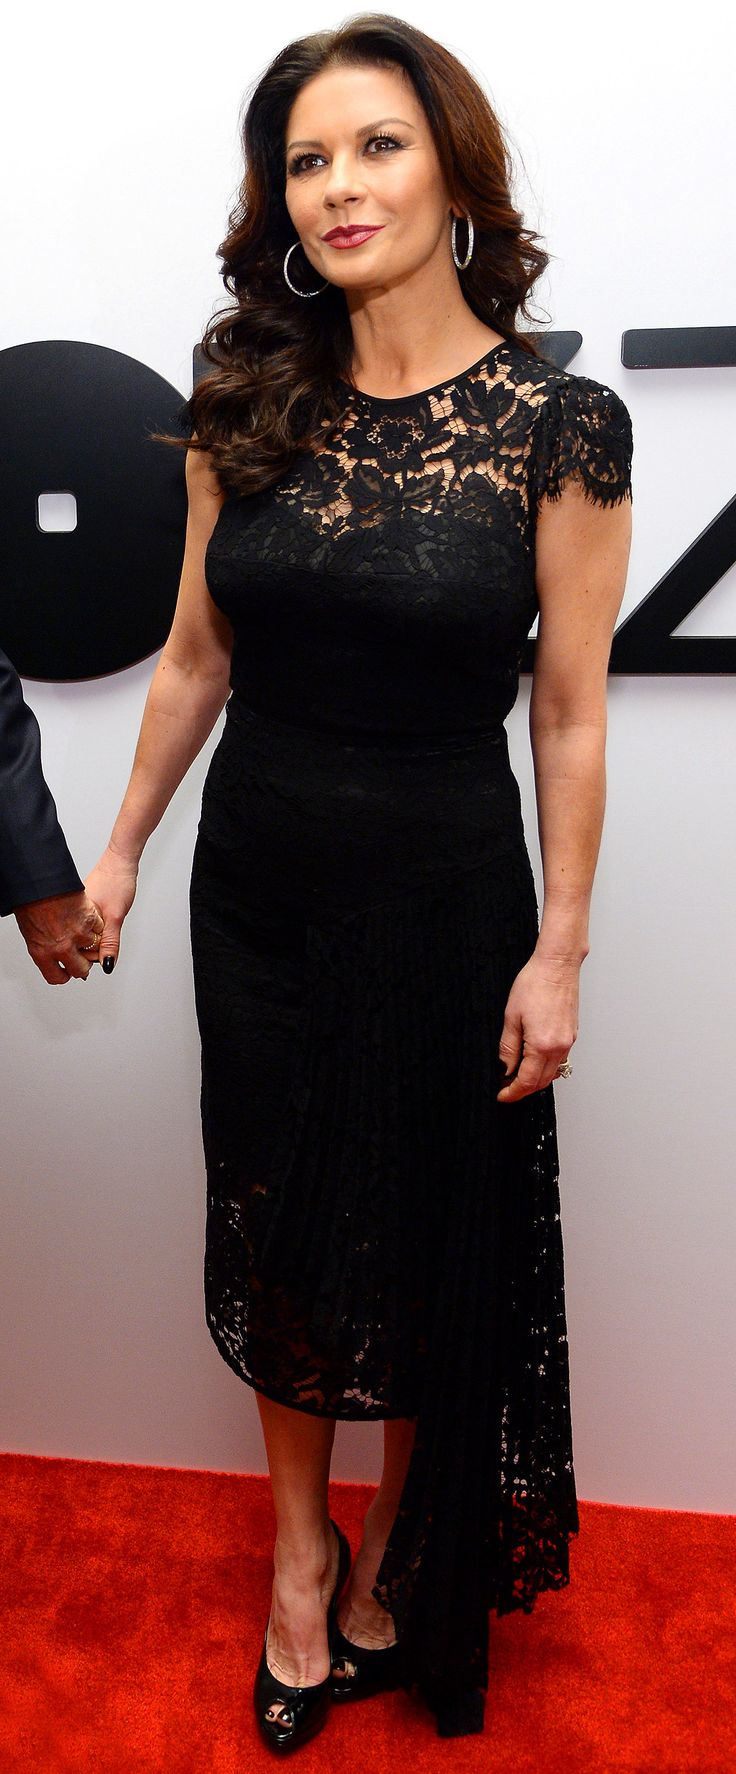 622 Best Images About Xyloto On Pinterest: 622 Best Images About Catherine Zeta-Jones On Pinterest